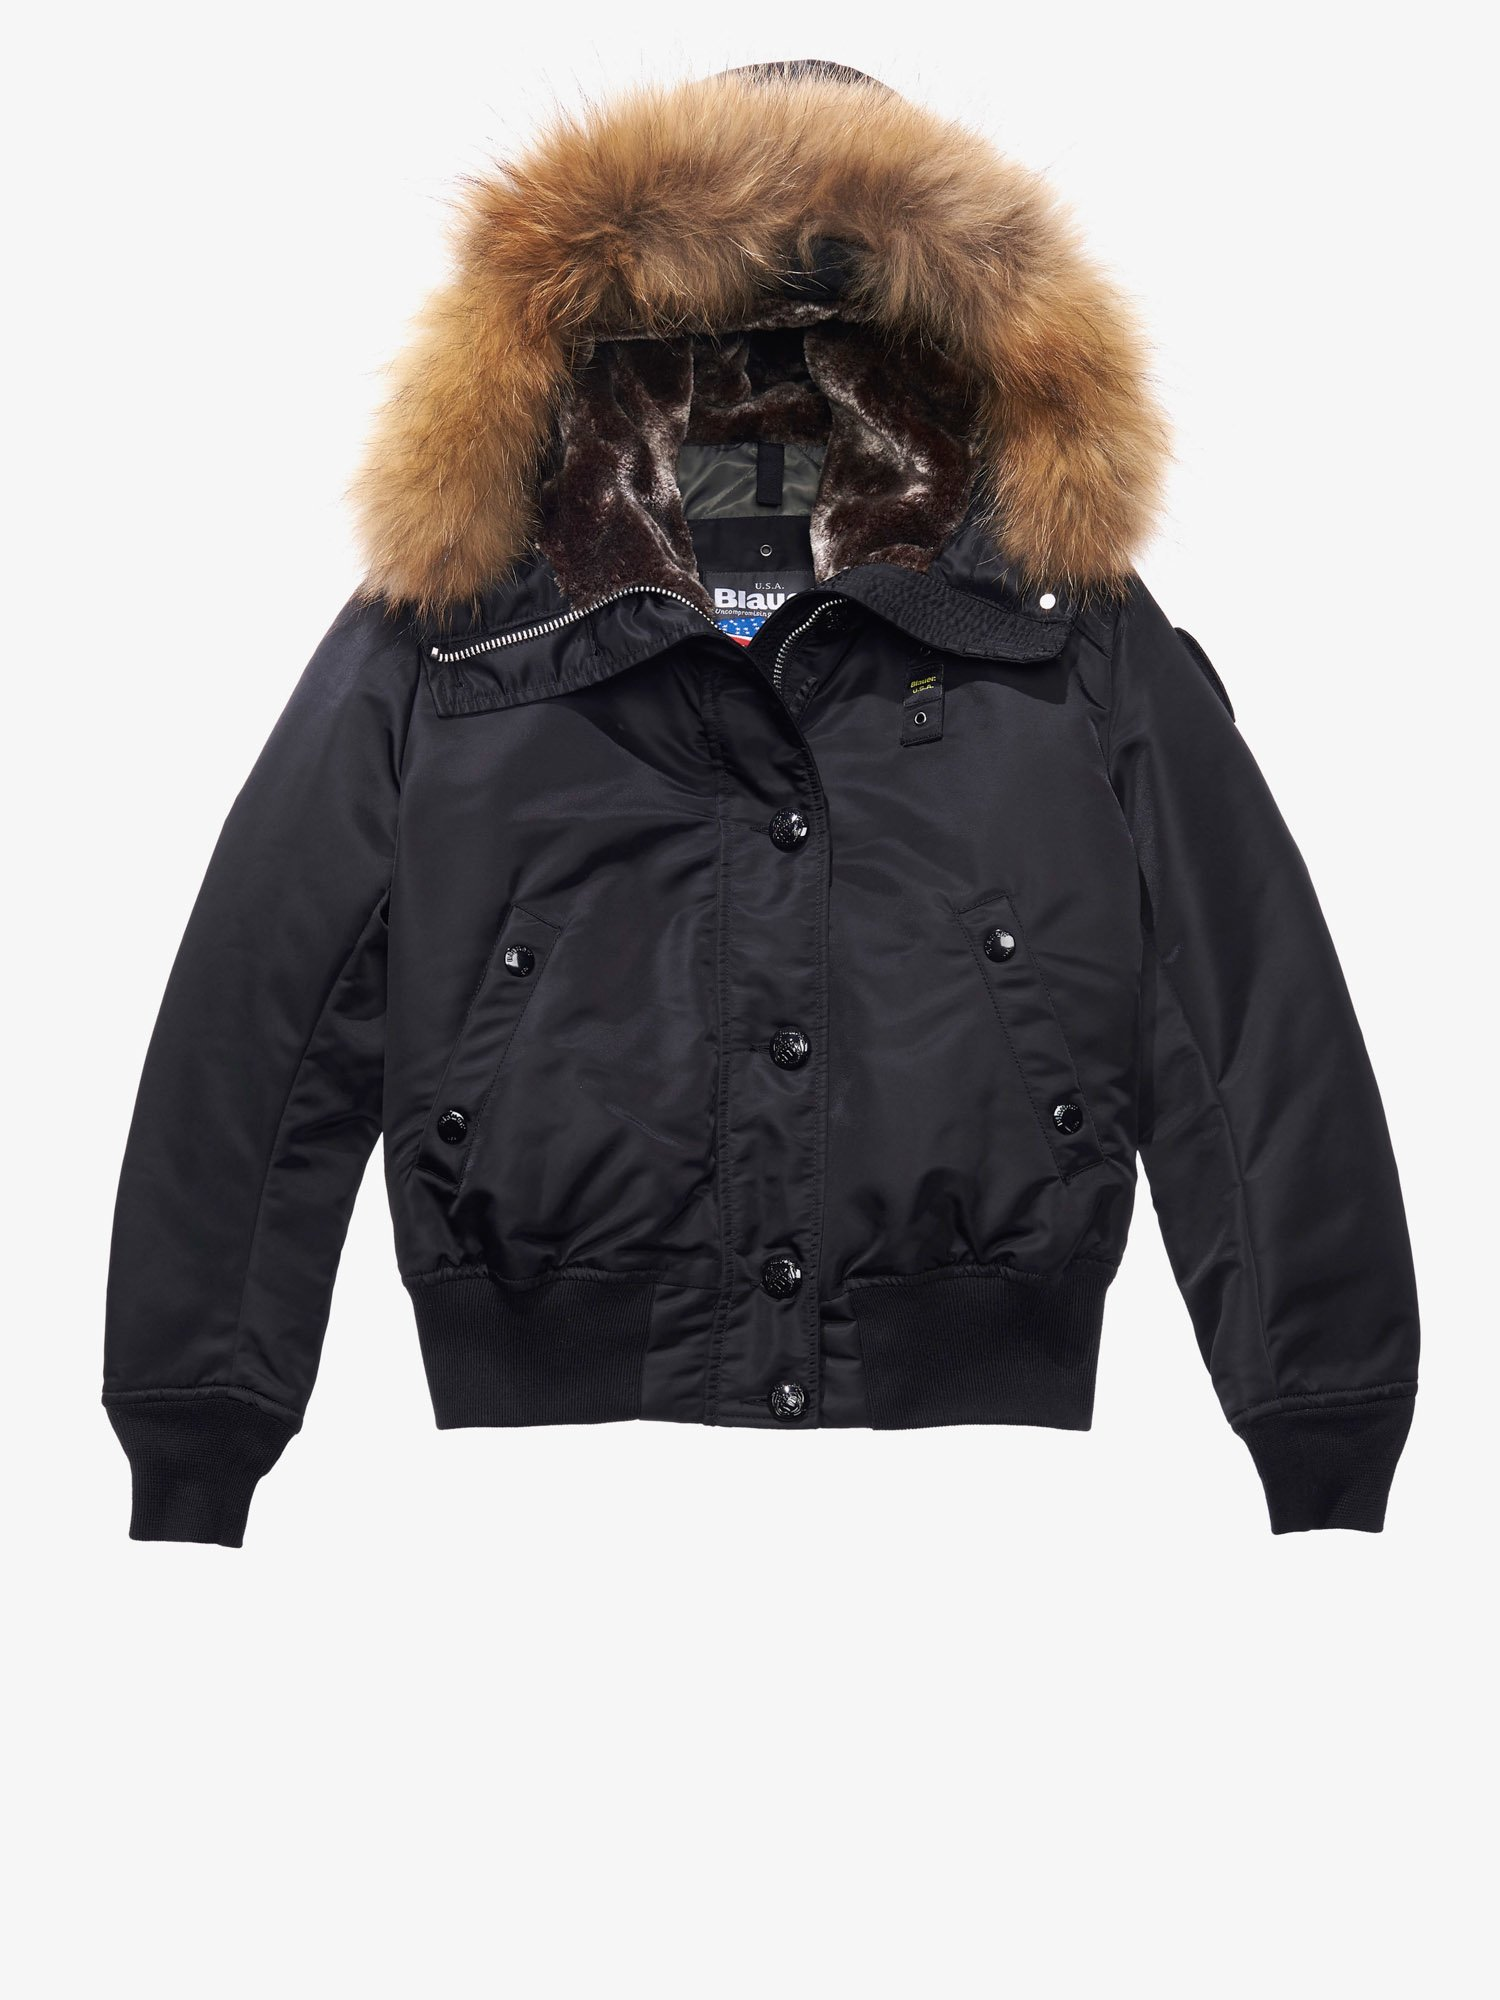 Blauer - IRENE AVIATOR BOMBER JACKET WITH FUR HOOD - Black - Blauer